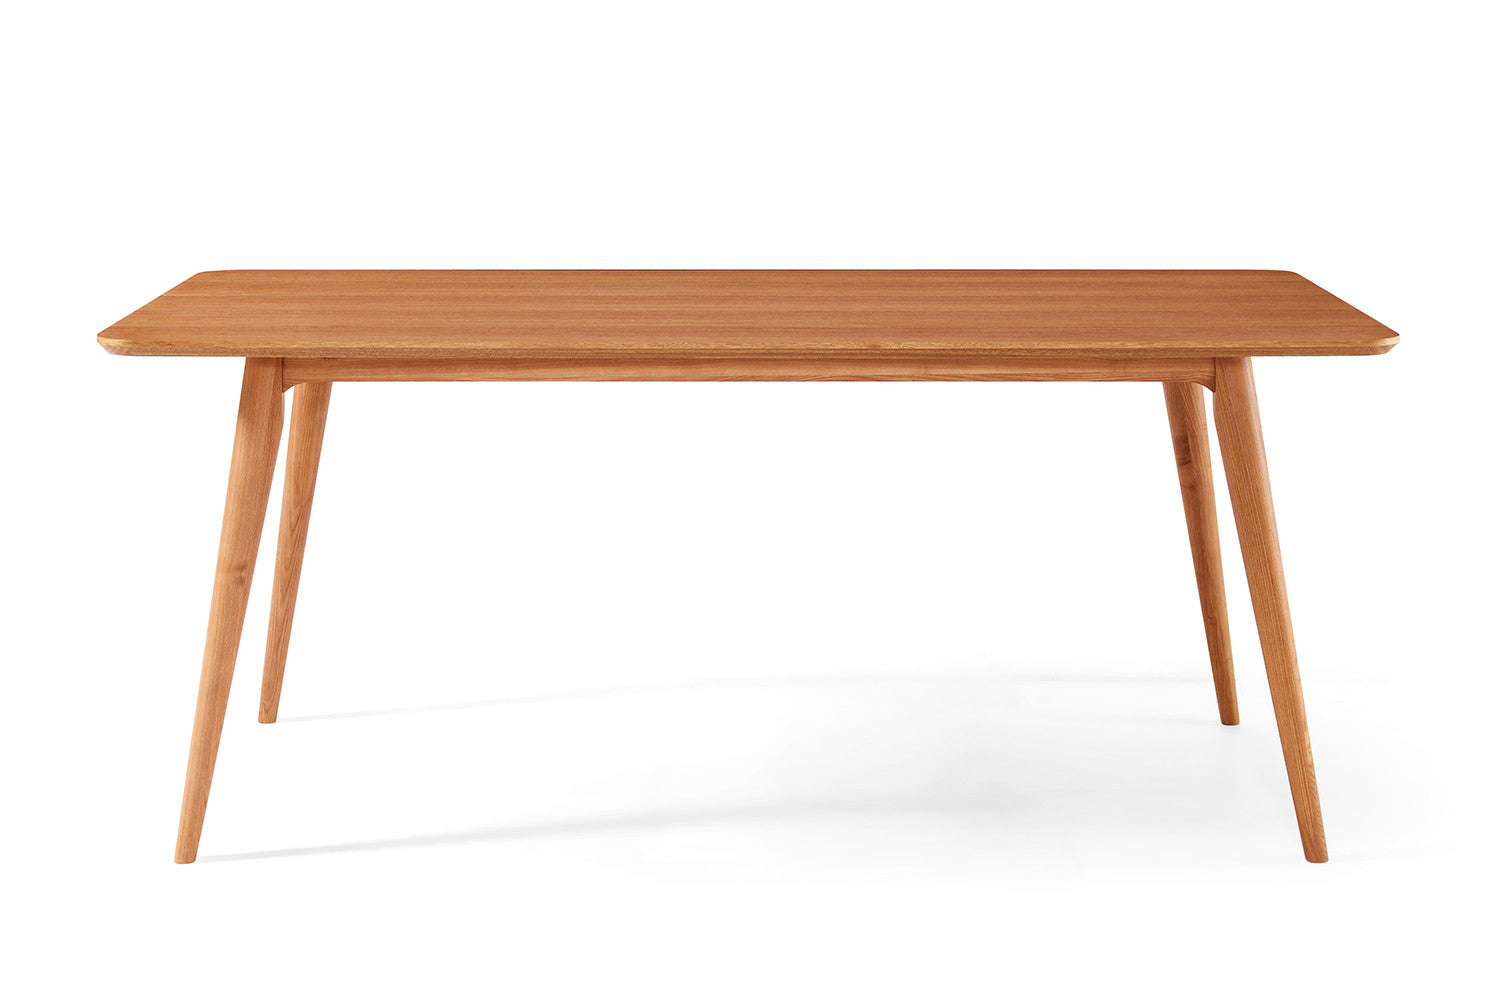 Table de salle manger design en bois julia dewarens for Table a salle a manger design